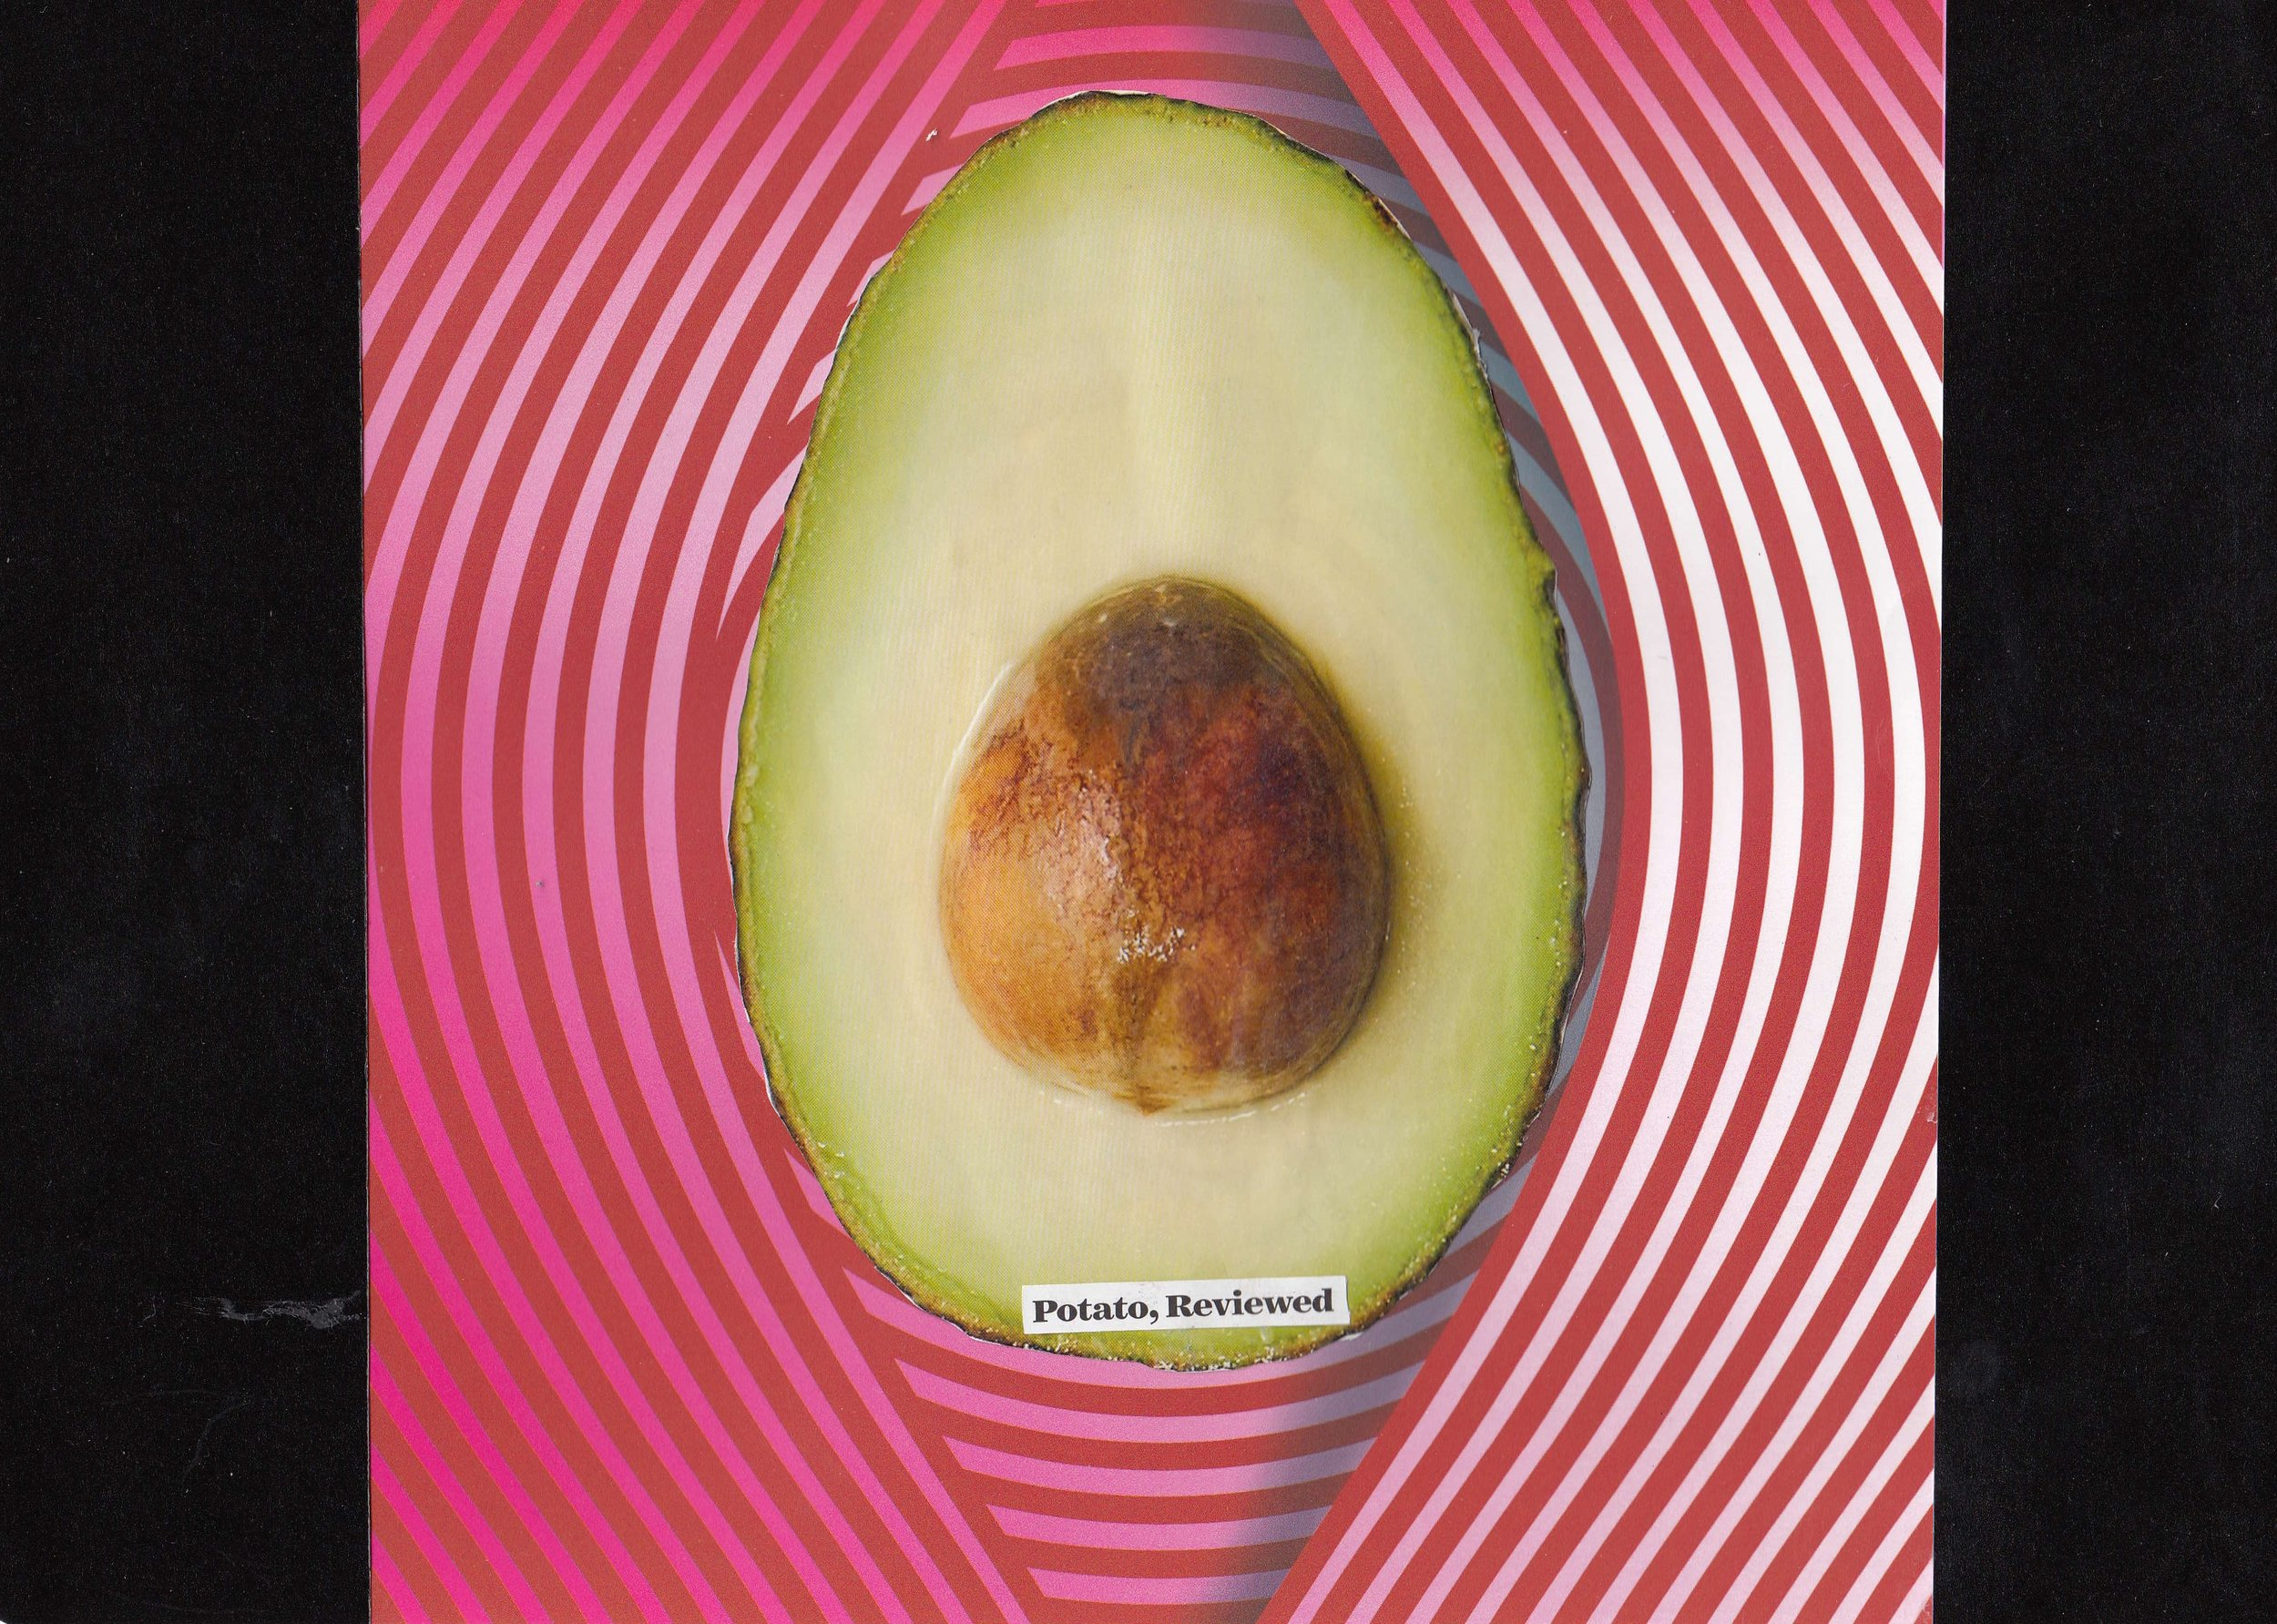 This is not an avocado. This is a potato